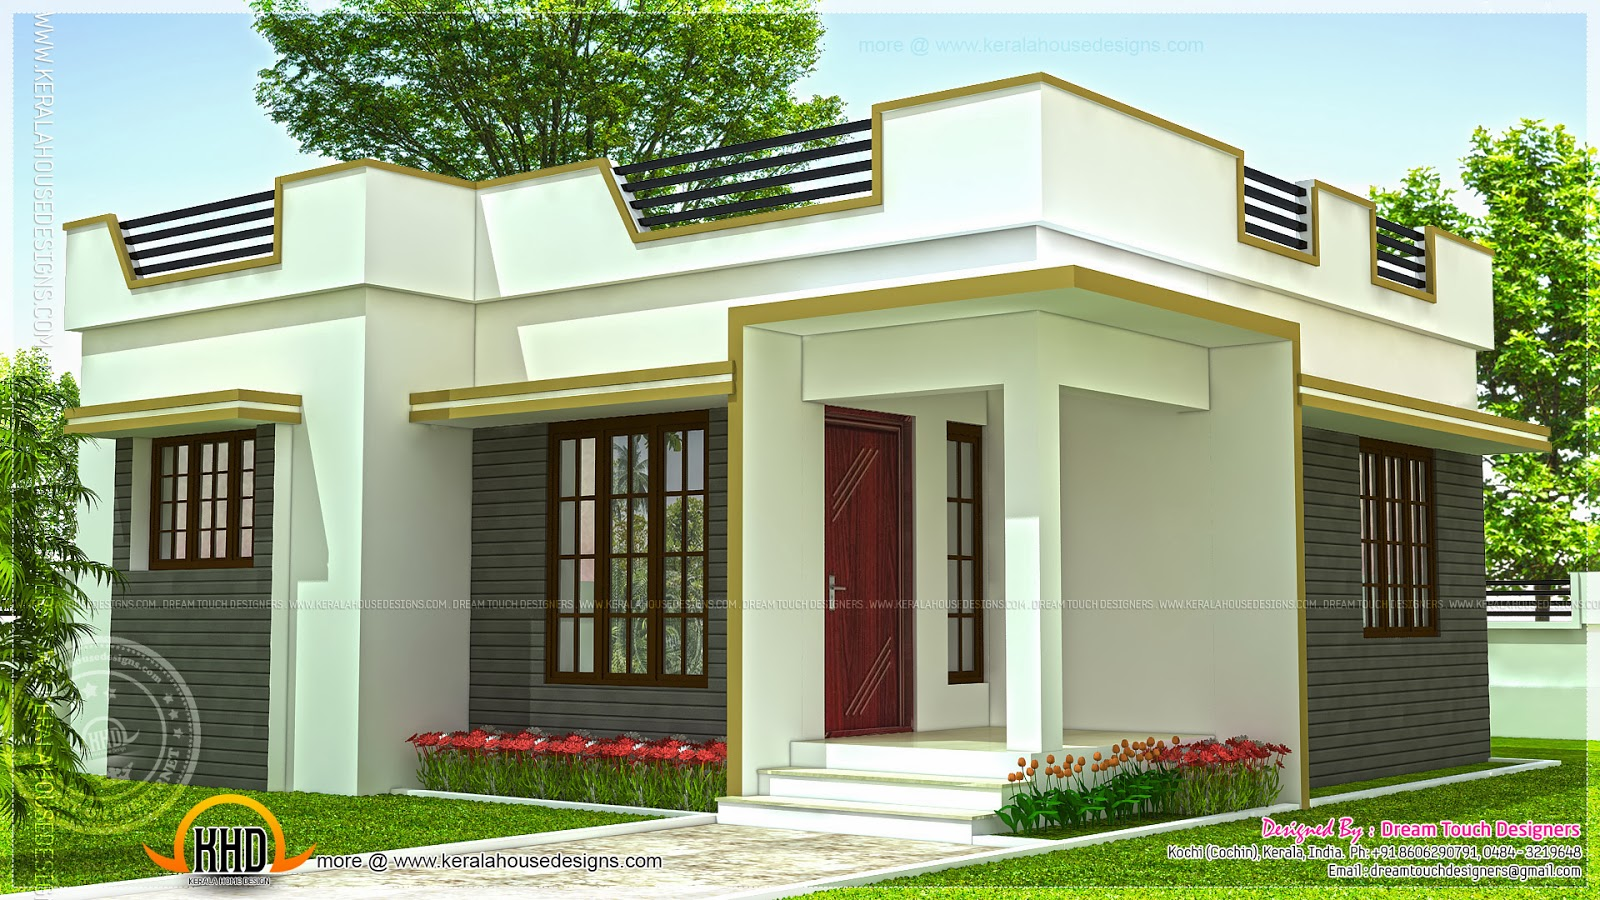 35 small and simple but beautiful house with roof deck - Small House Designs